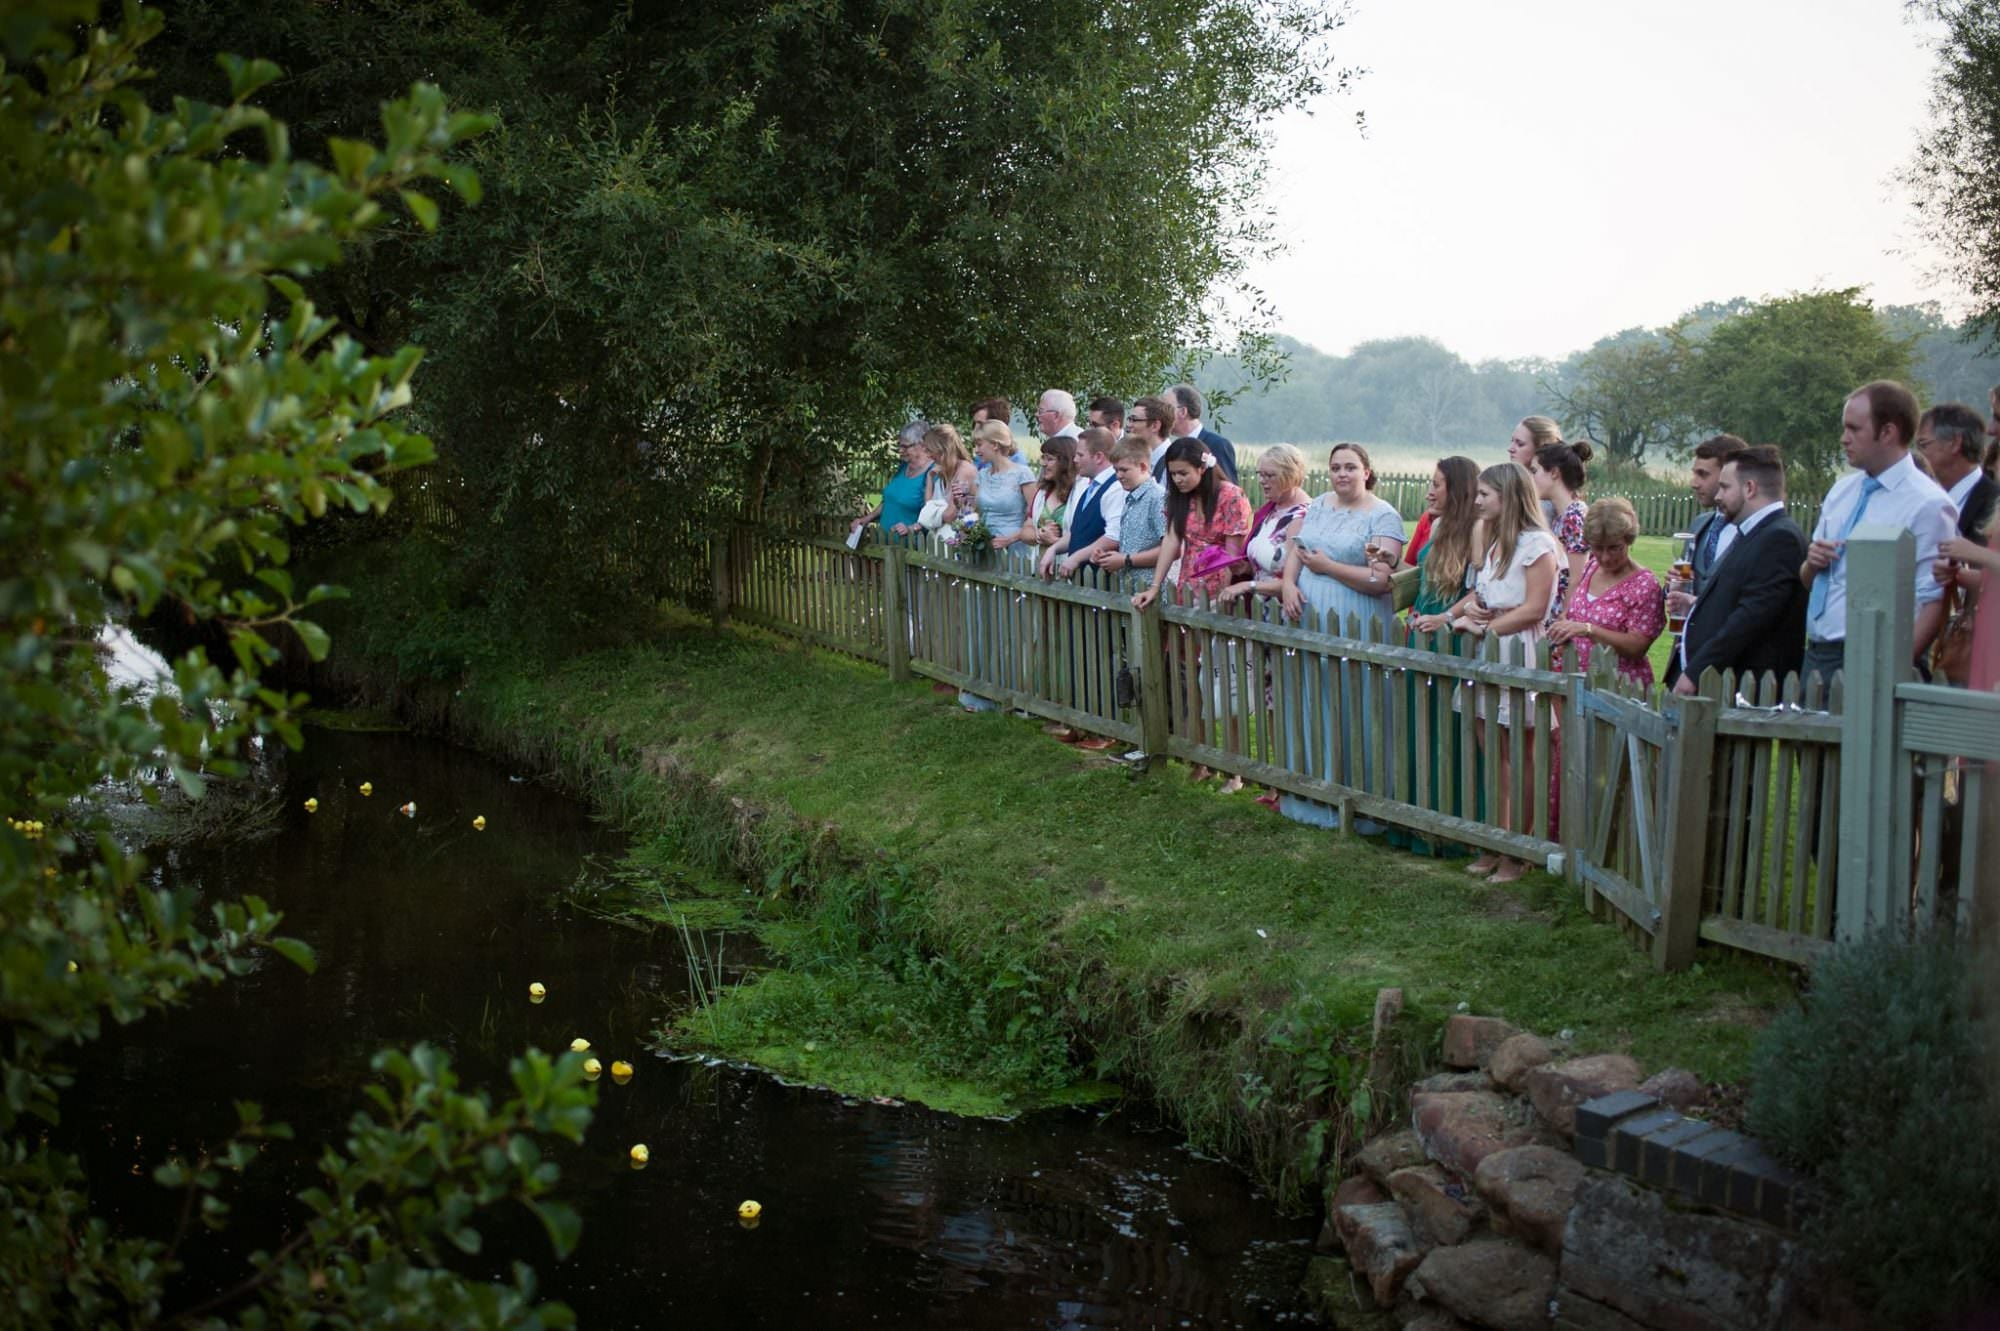 Sopley Mill Duck race during Dorset wedding day